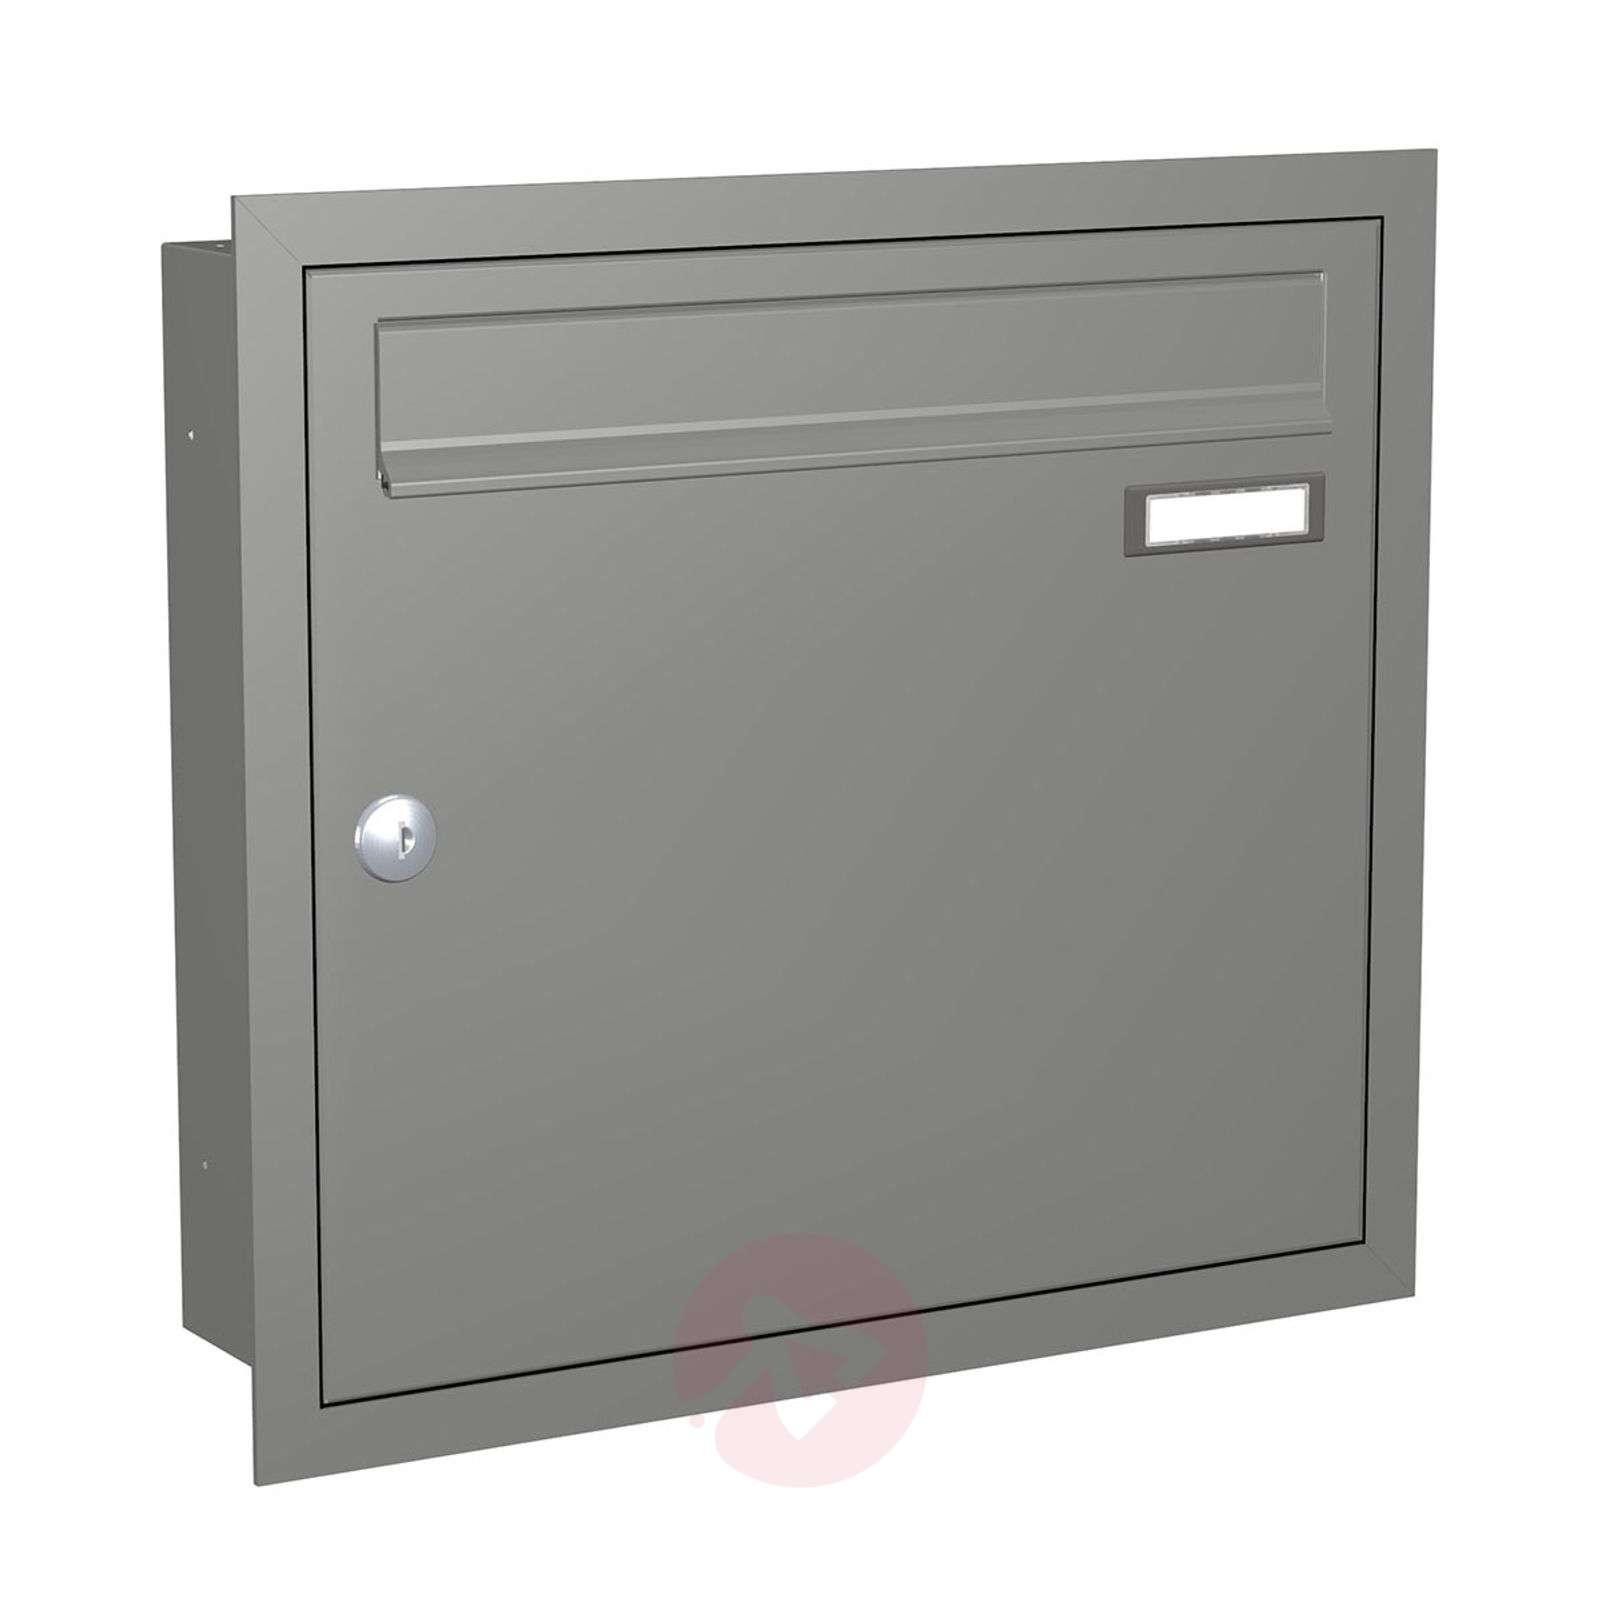 Modern letterbox Express Box Up 110 grey alu.-5540032-01